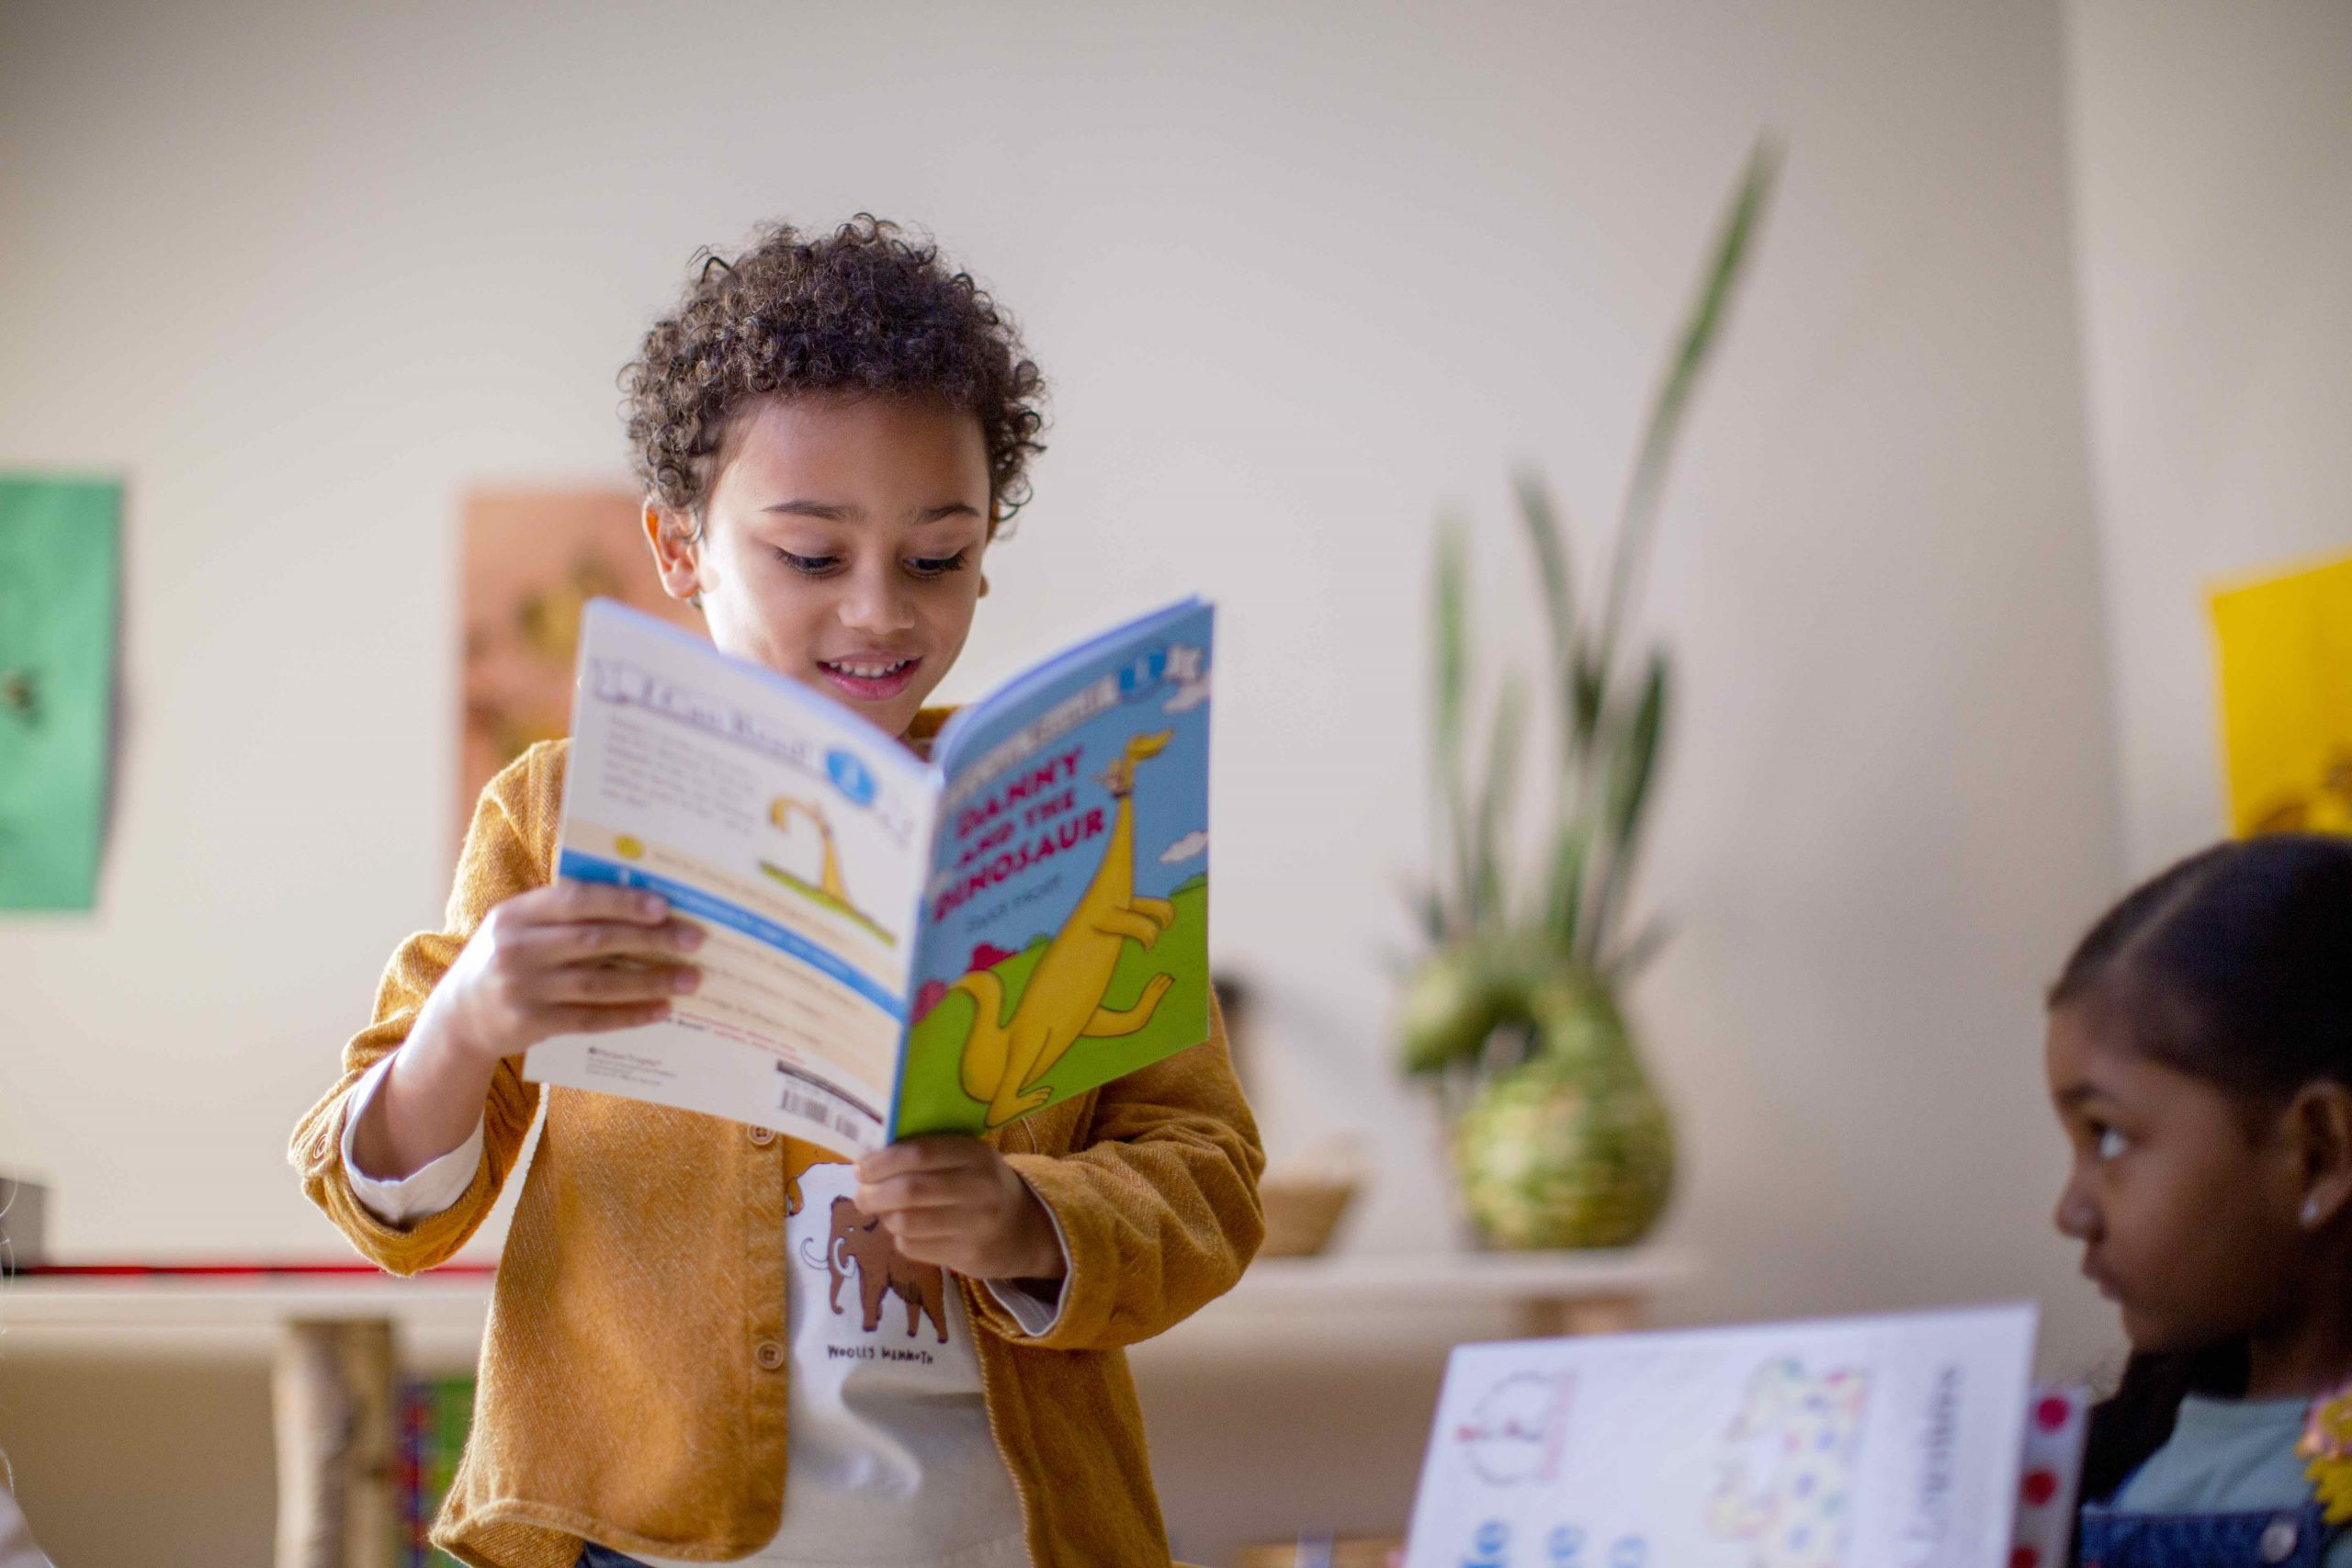 50 book recommendations for curious kids on kid-favorite topics like dinosaurs